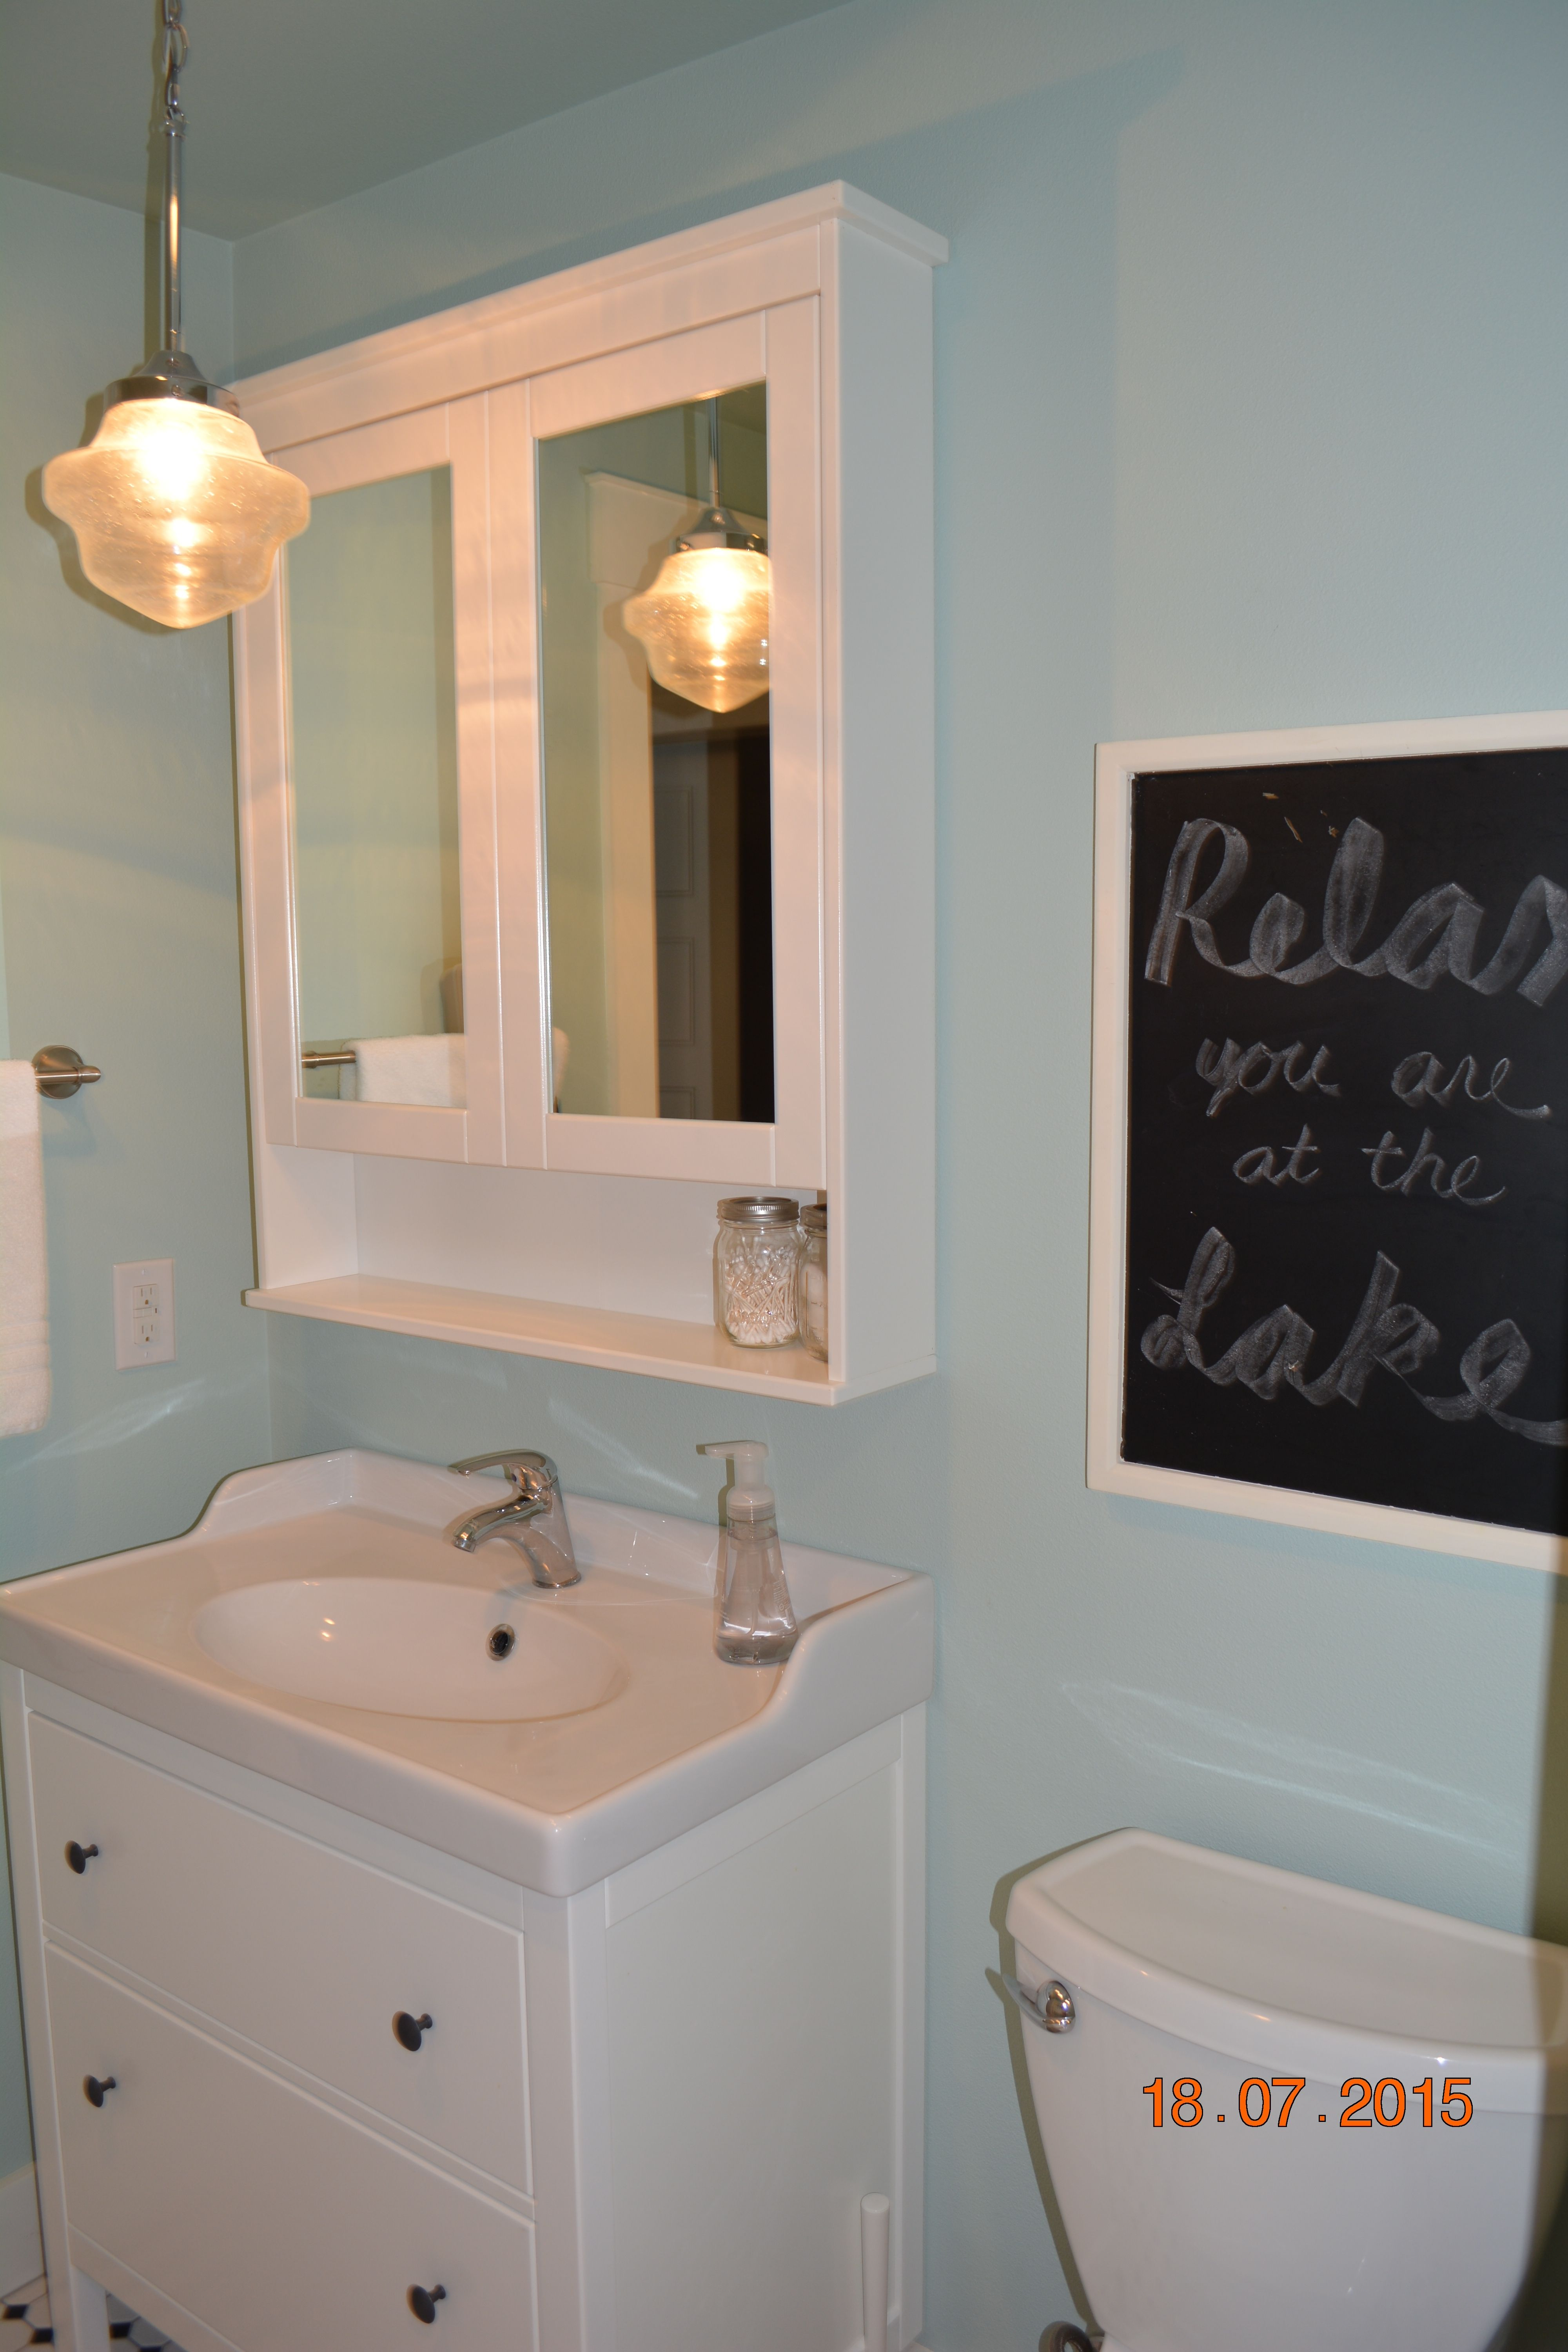 Lovely I Chose The Ikea Hemnes Sink And Medicine Cabinet For The Guest Bathroom.  The Mint